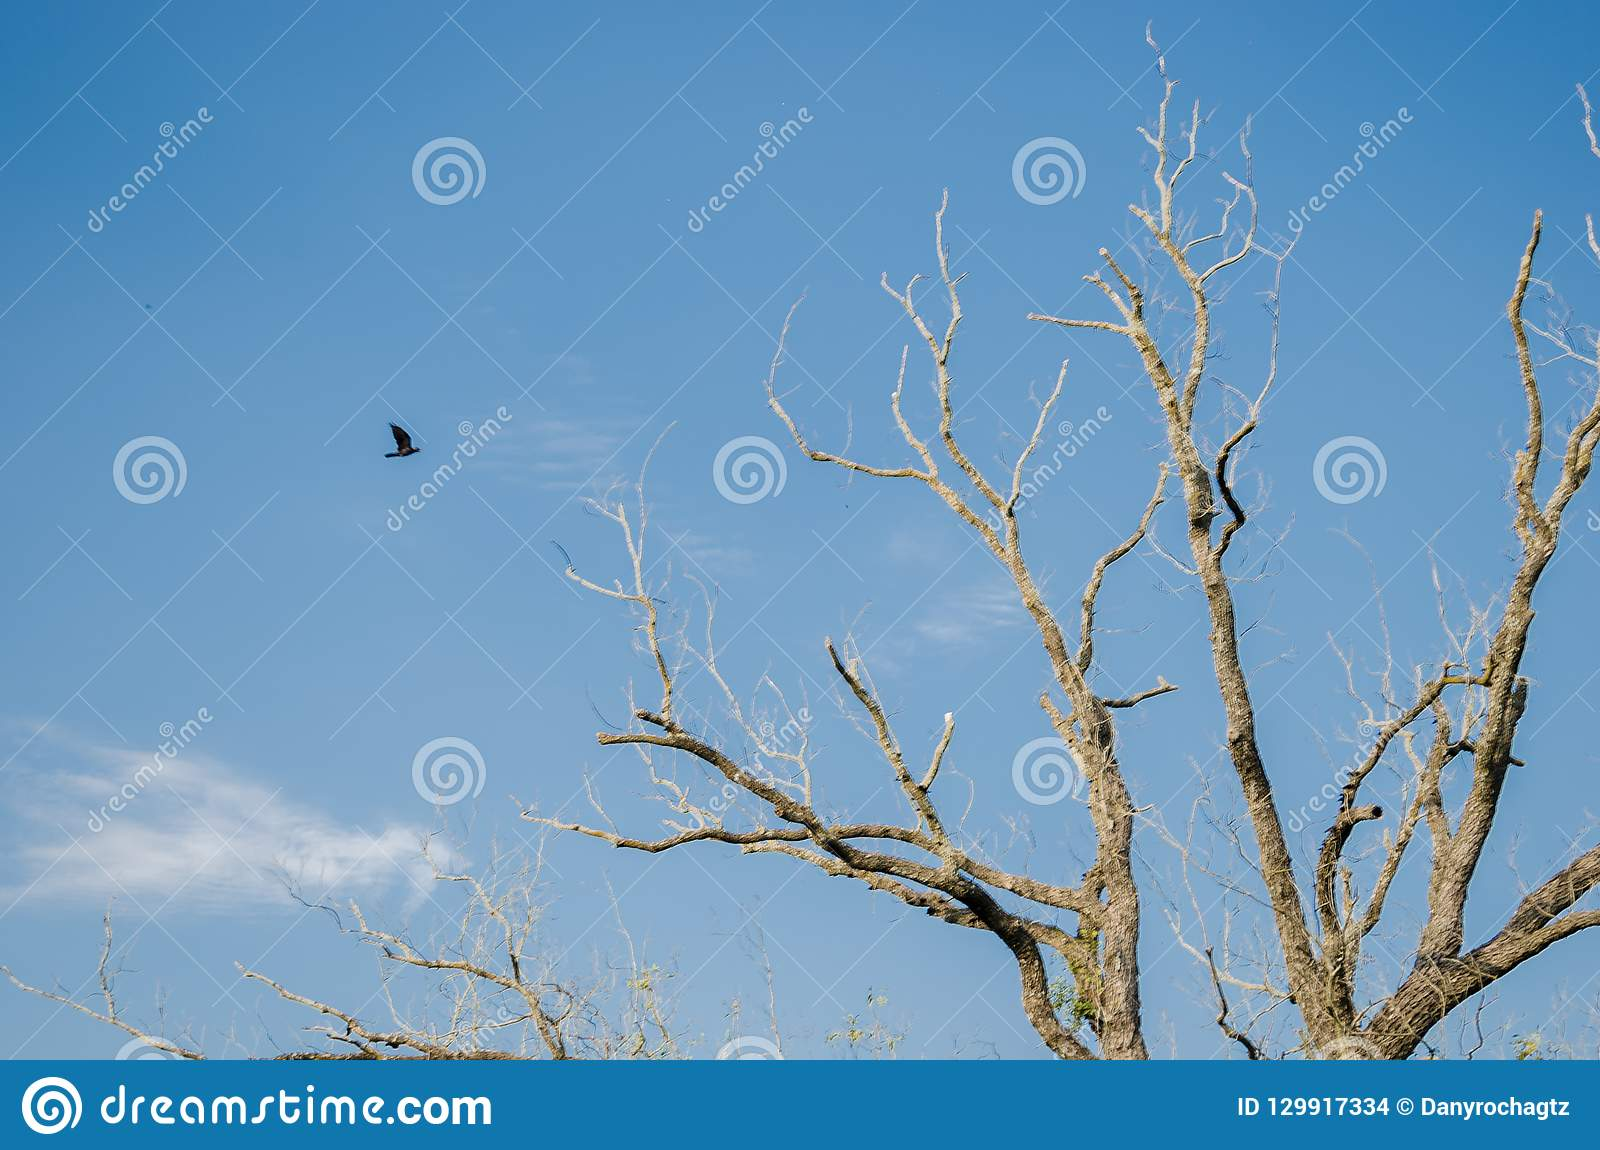 A black crow flying towards a large dry tree, background with a beautiful clear blue sky